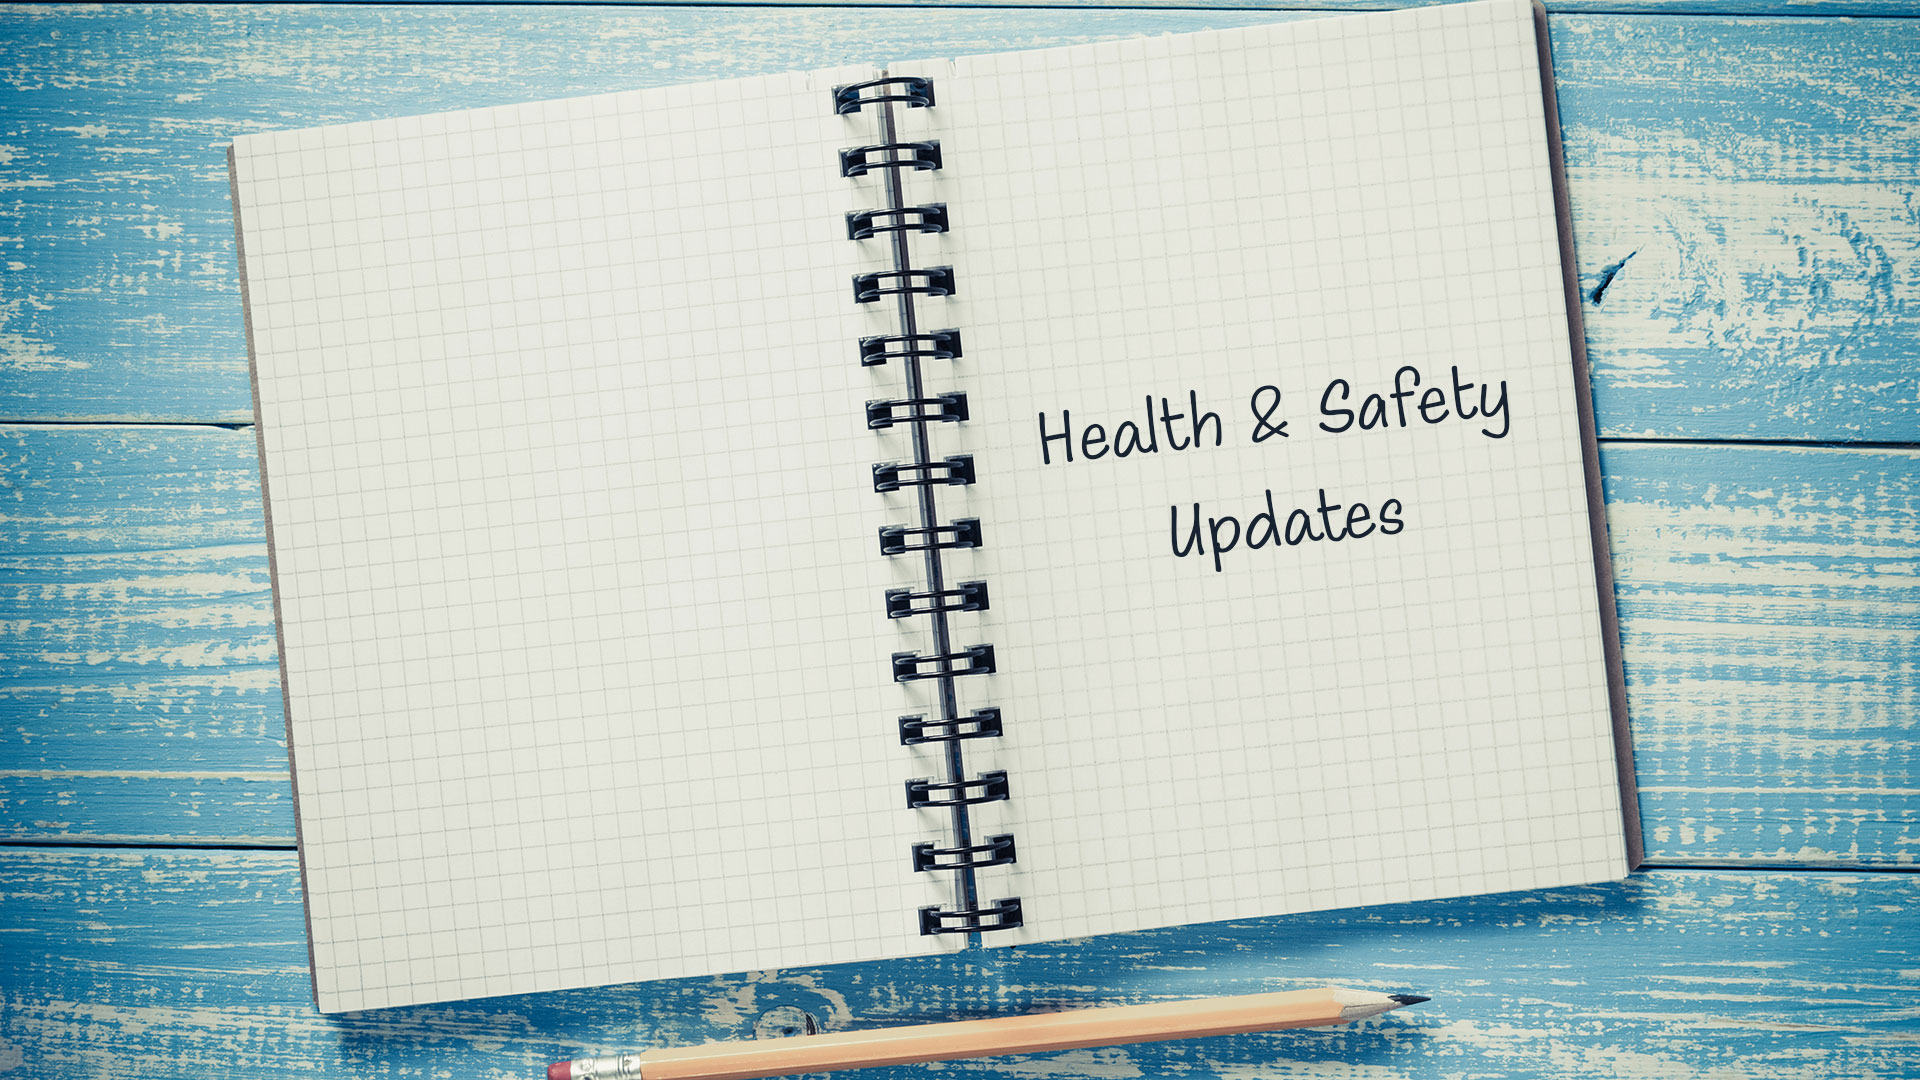 Health & Safety Updates